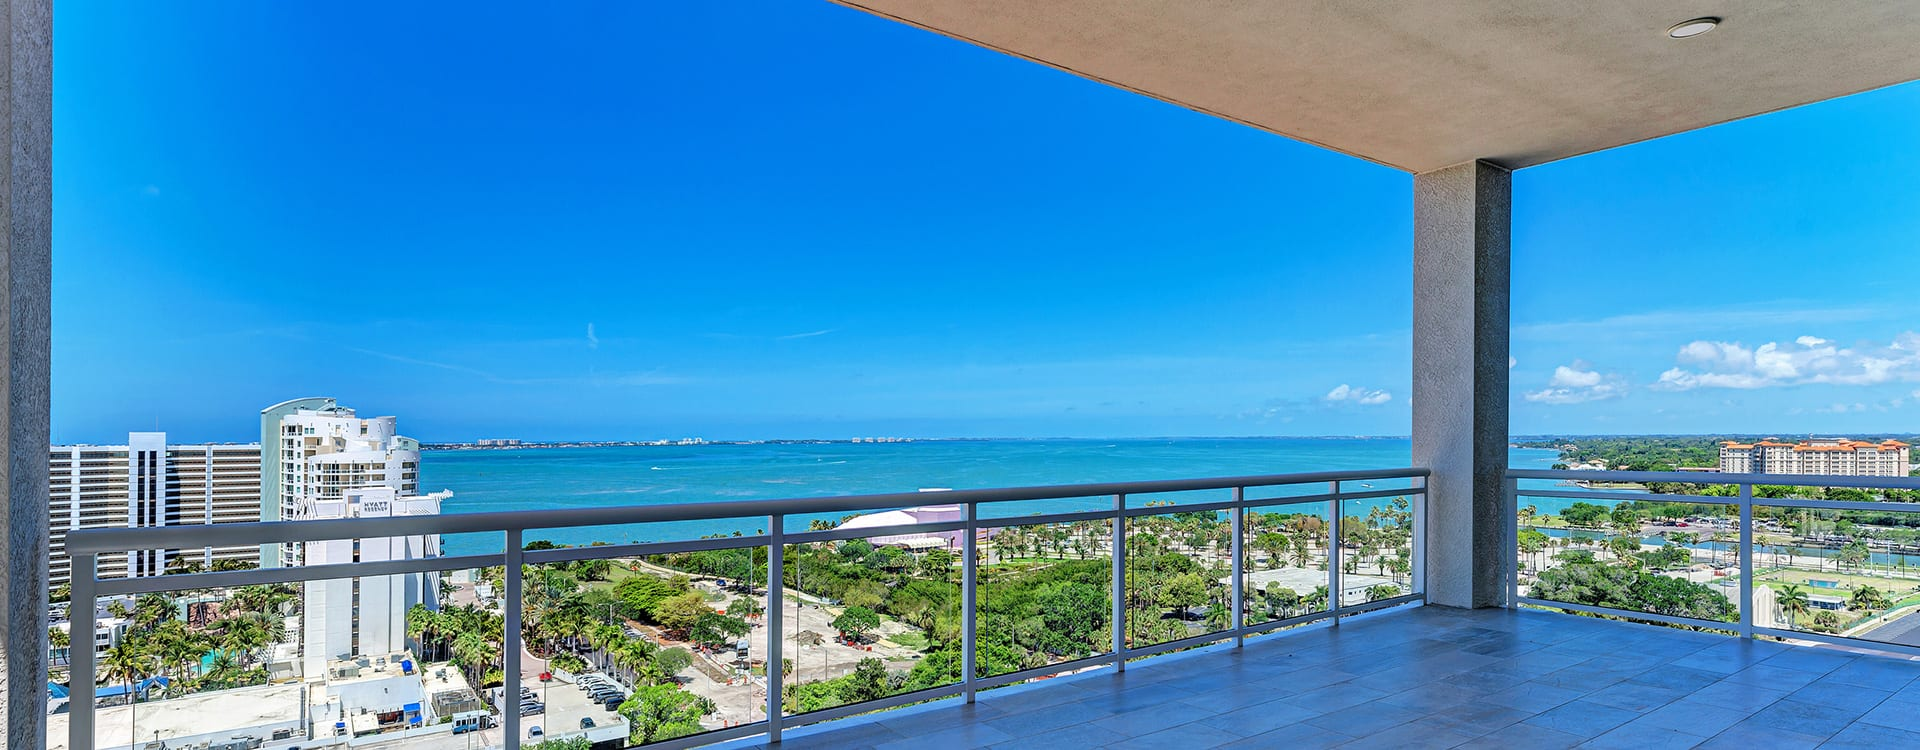 terrace and views of gulf of mexico at BLVD Sarasota Residence 1603